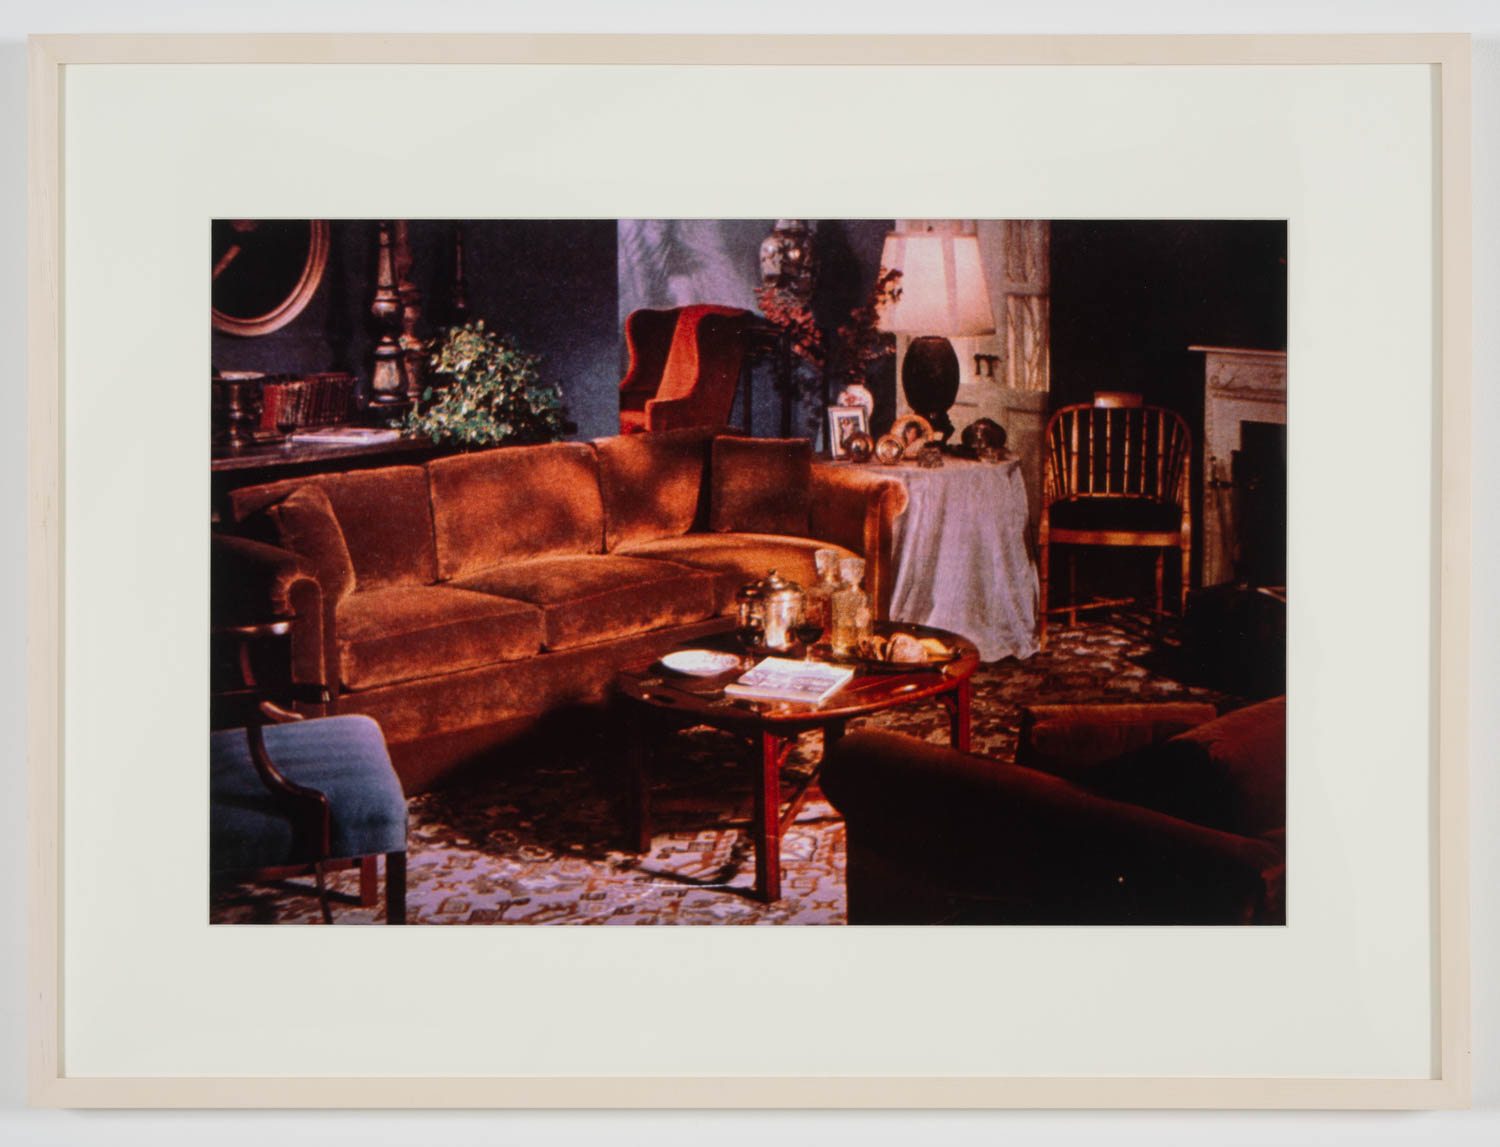 Richard Prince<div><i>Untitled (Living rooms)</i>, (detail) 1977</div><div><br></div>